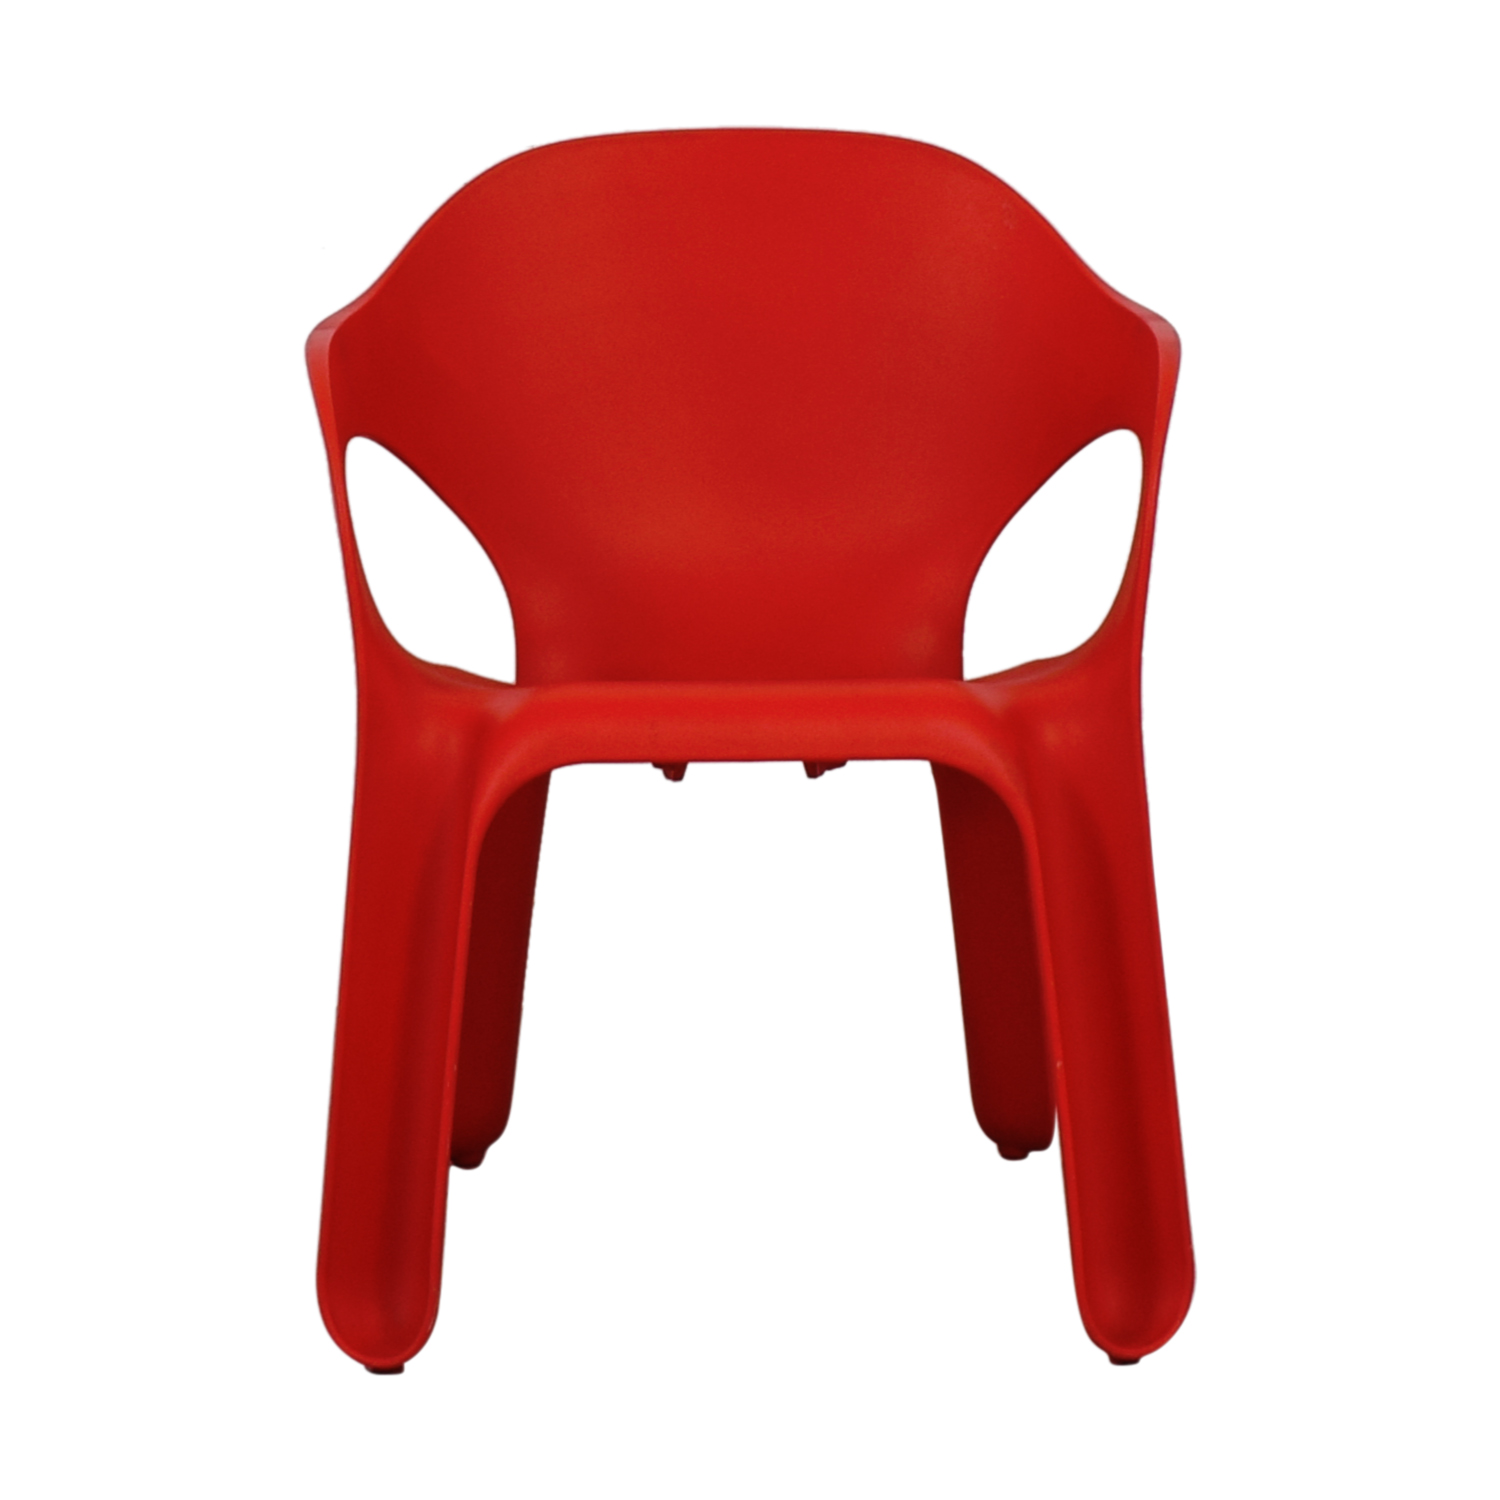 Magic Red Molded Easy Chair by Jerszy Seymour / Accent Chairs